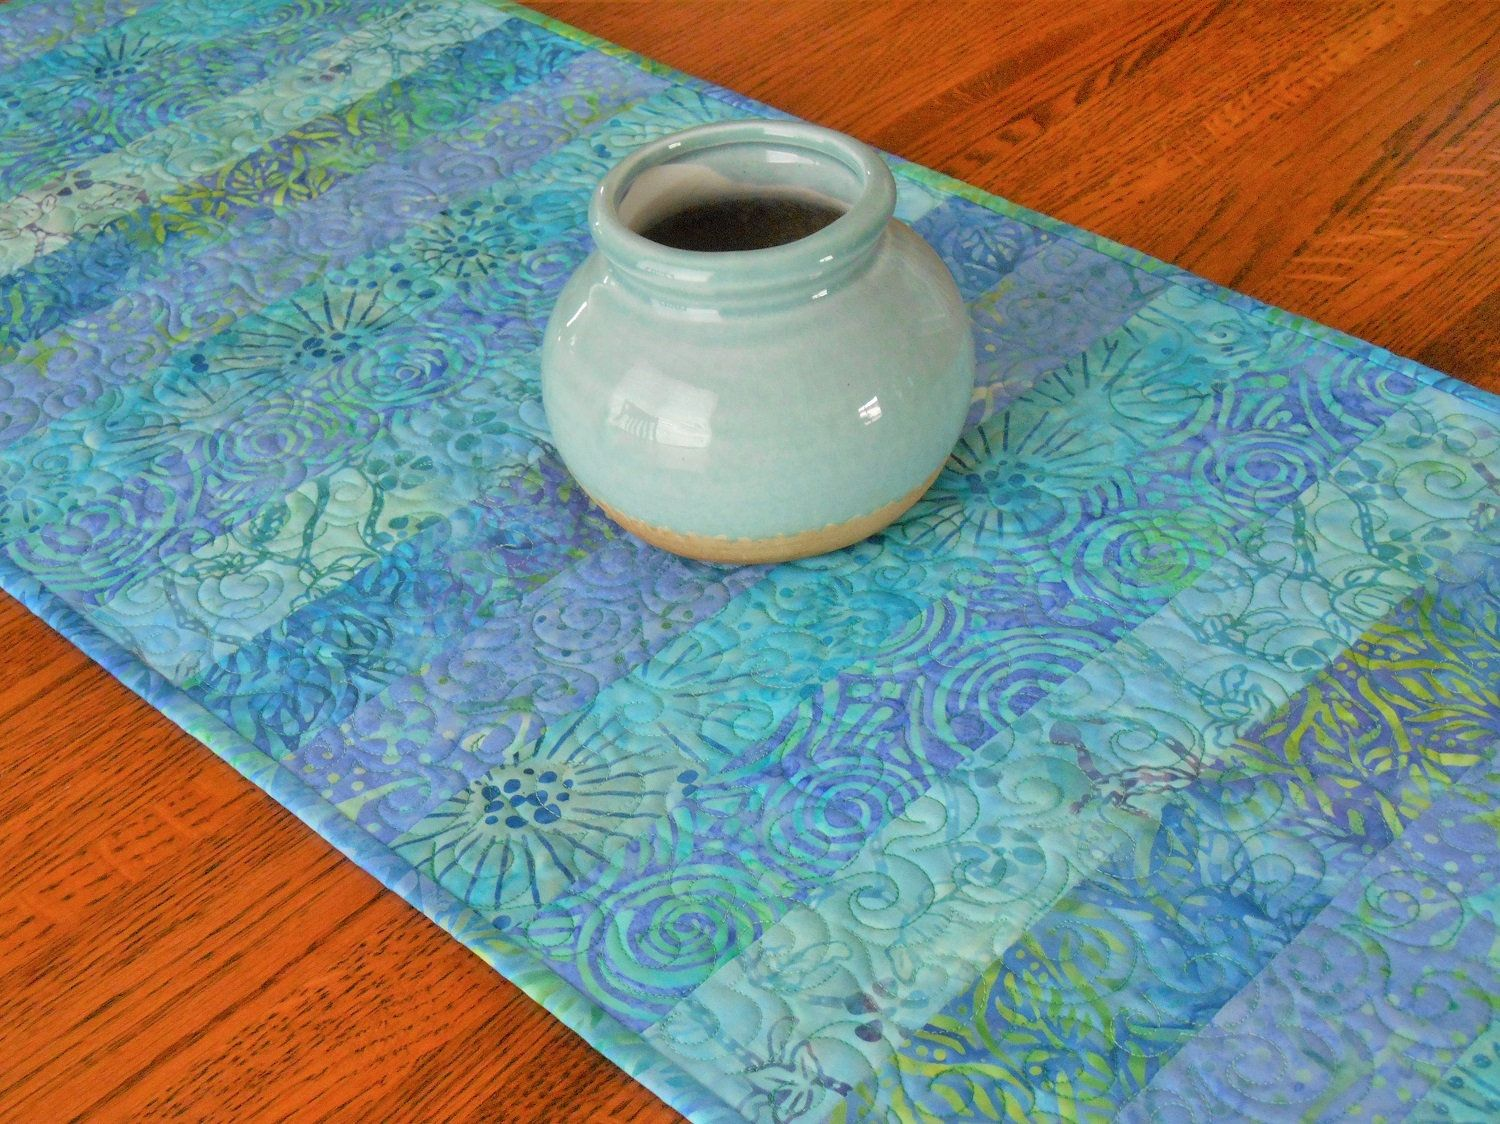 Quilted Batik Table Runner In Aqua Blue Lavender Coffee Table Runner Dining Table Decor B Batik Table Runners Quilted Table Runners Summer Table Decorations